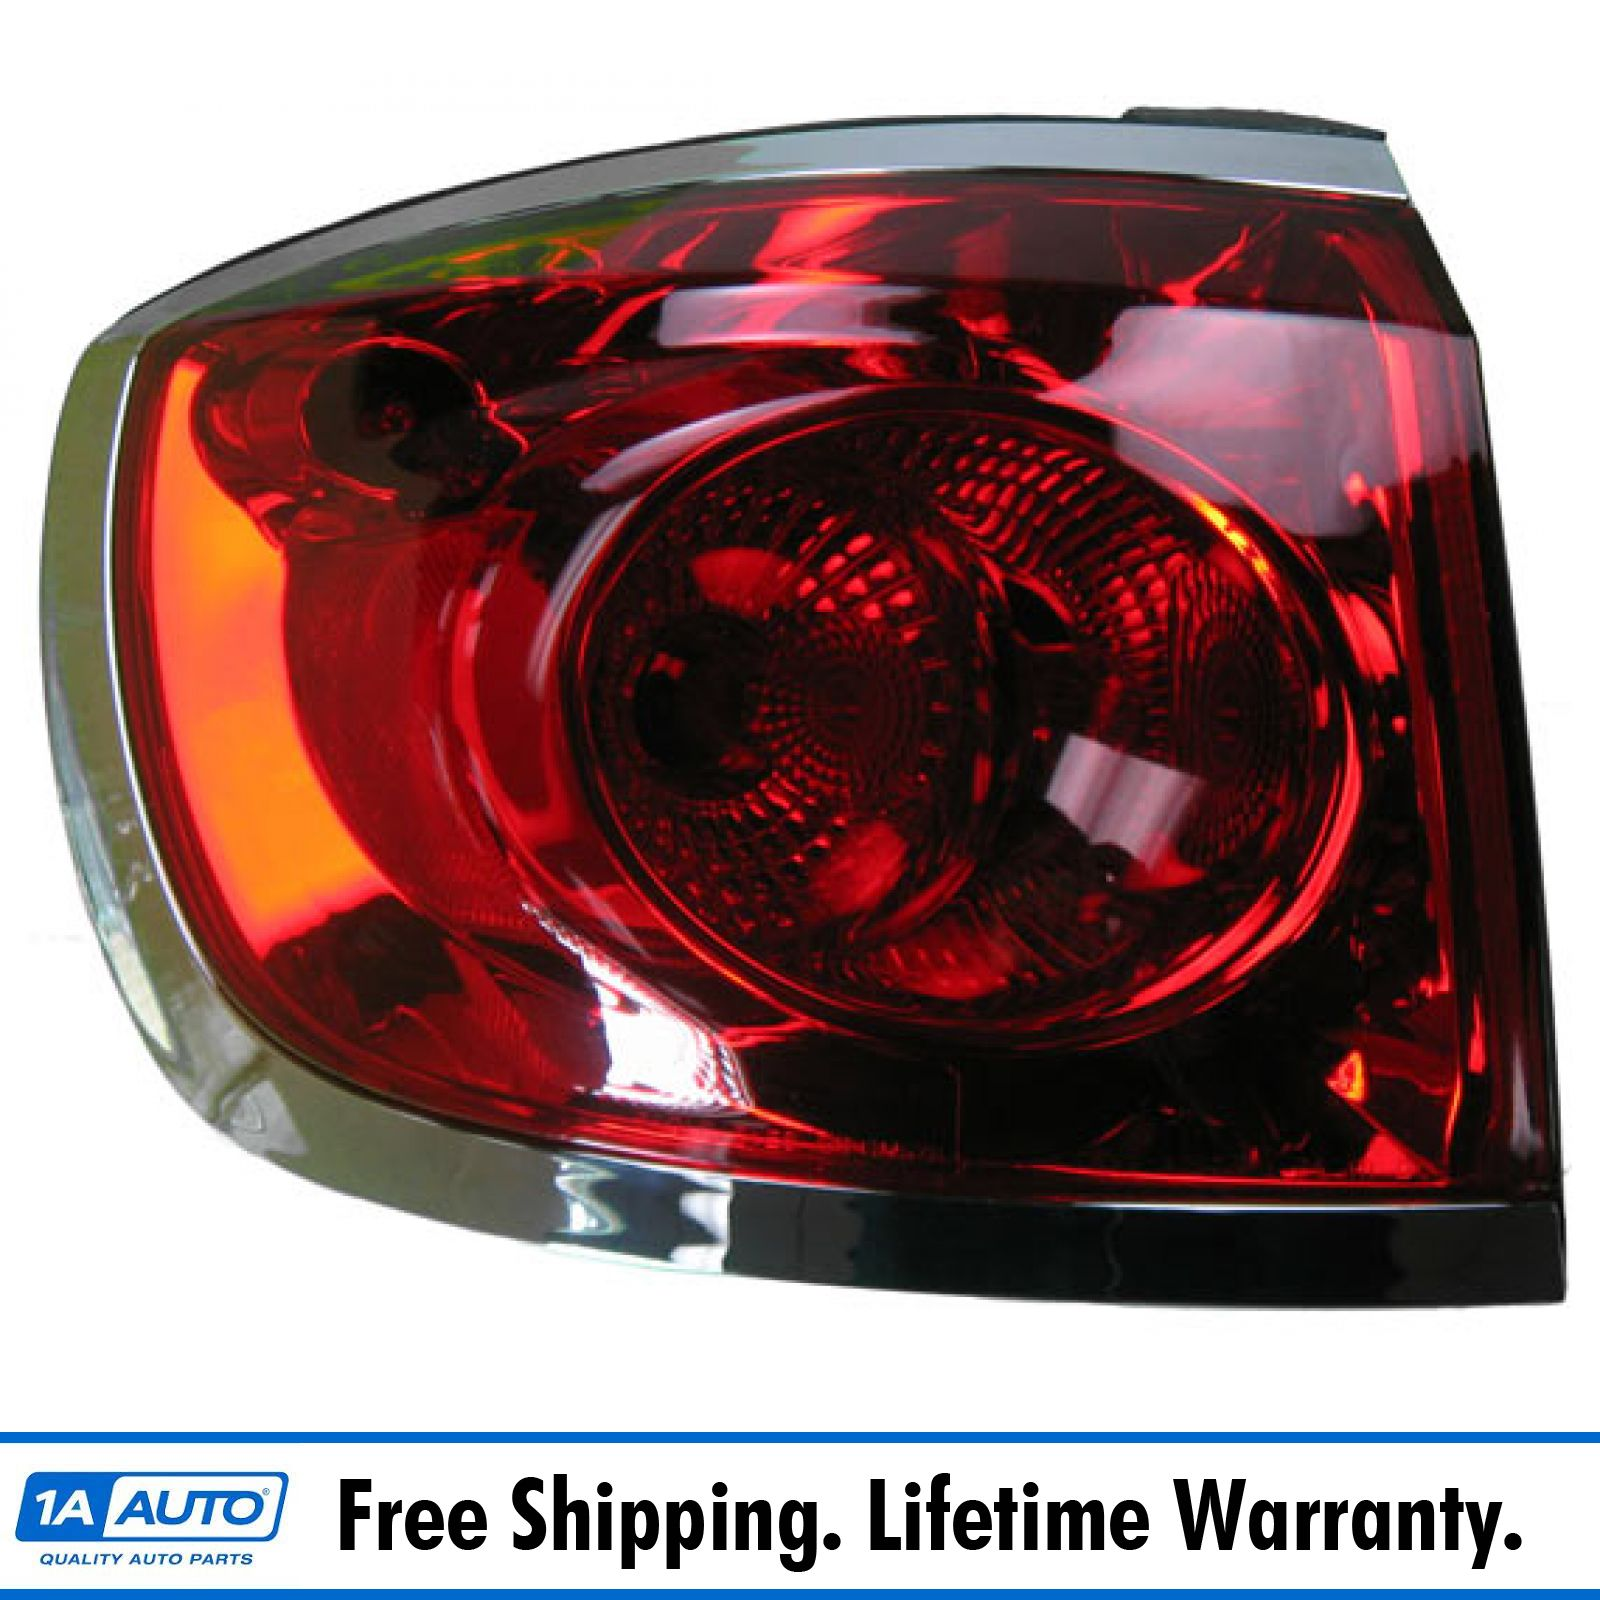 Buick Enclave 08-12 Left Lh Rear Brake Taillight Taillamp New Lens /& Housing